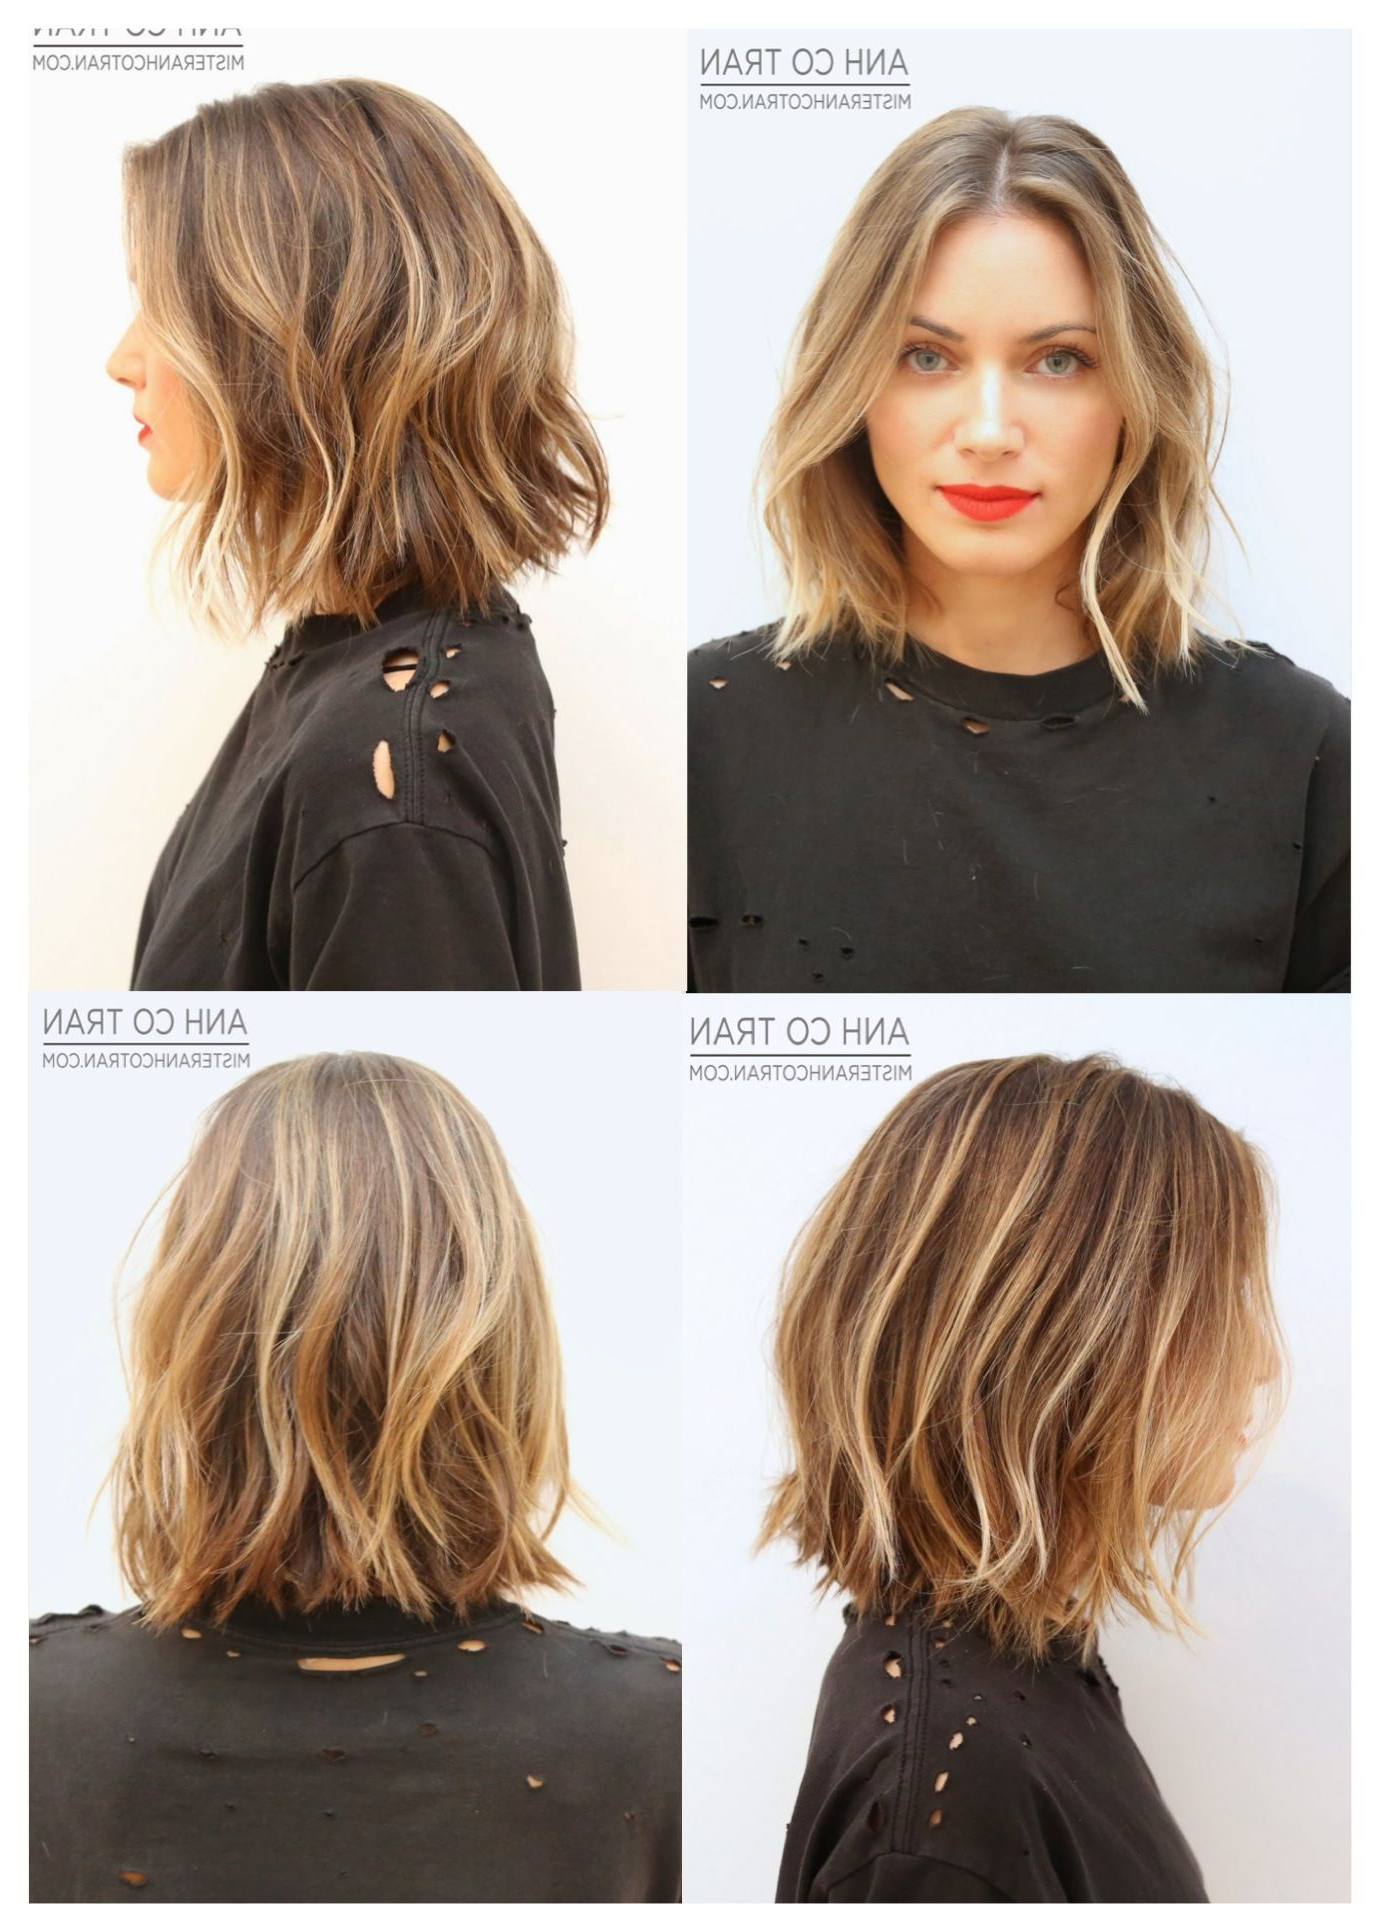 Most Current Full Tousled Layers Hairstyles Intended For Short Tousled Hair (View 3 of 20)